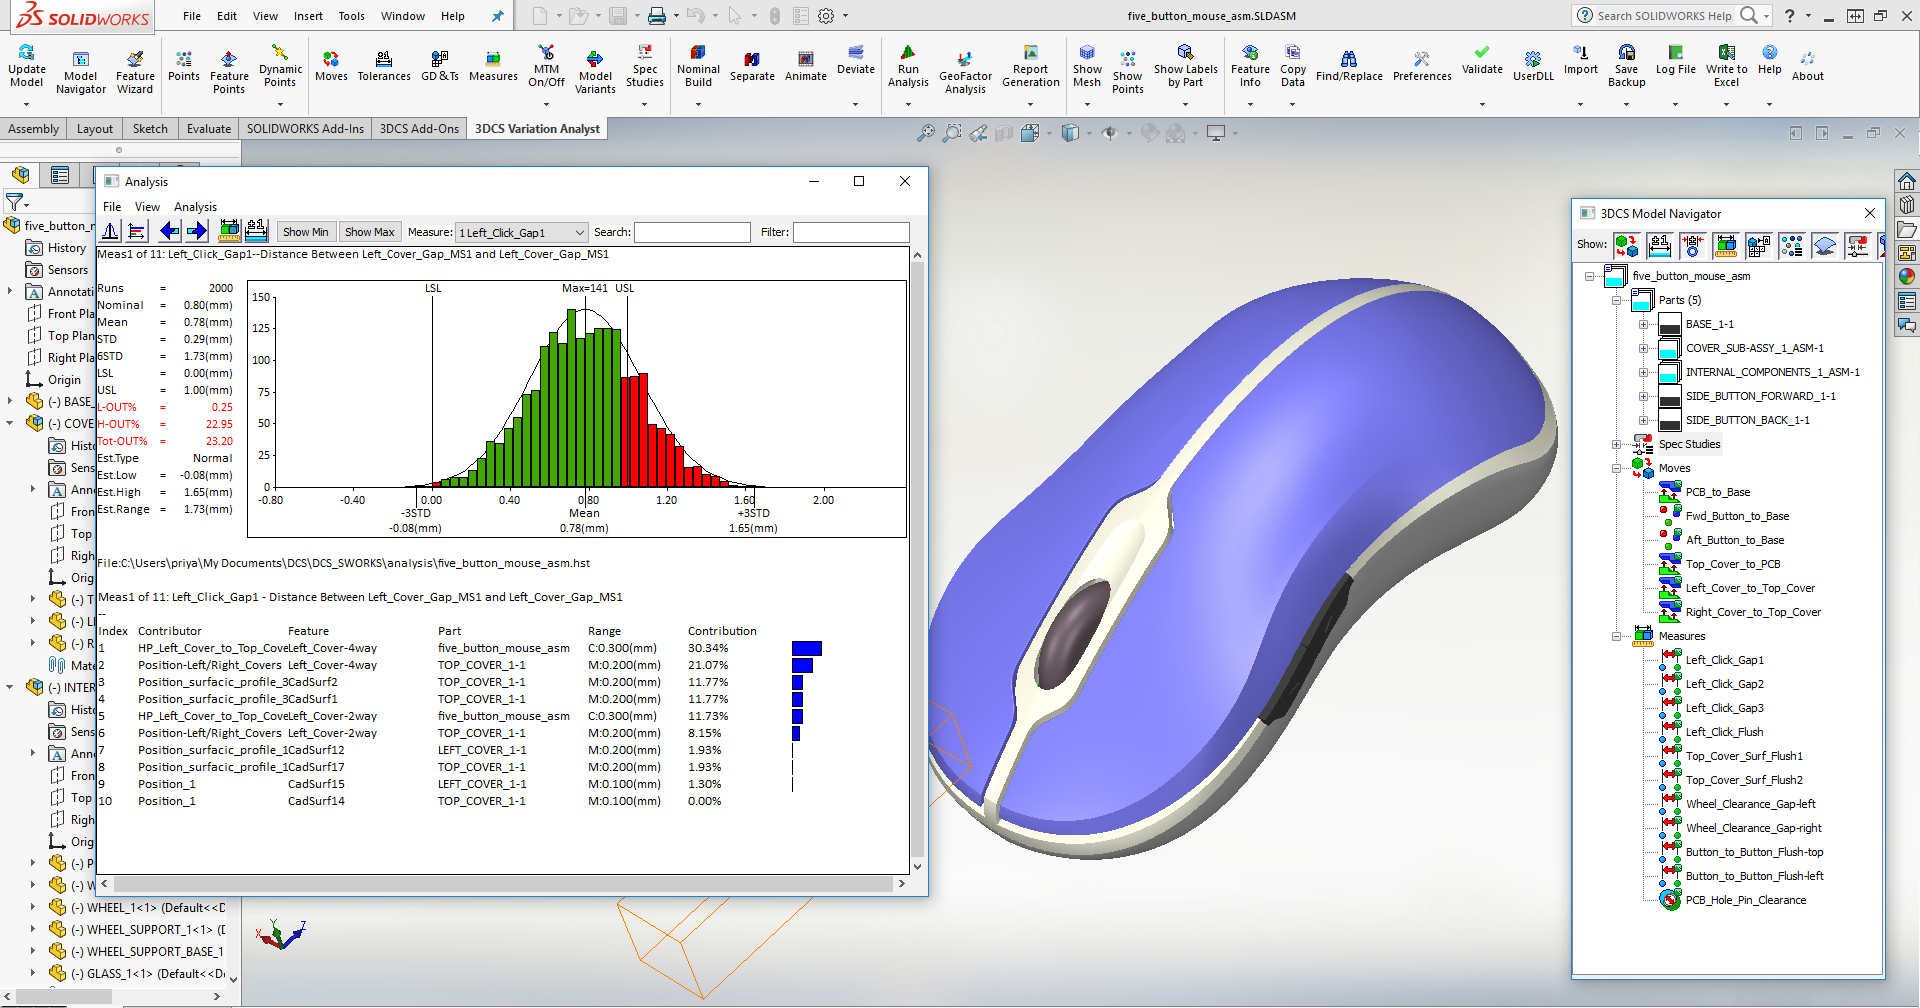 DCS to Unveil New Product 3DCS for SOLIDWORKS - at 3DEXPERIENCE WORLD